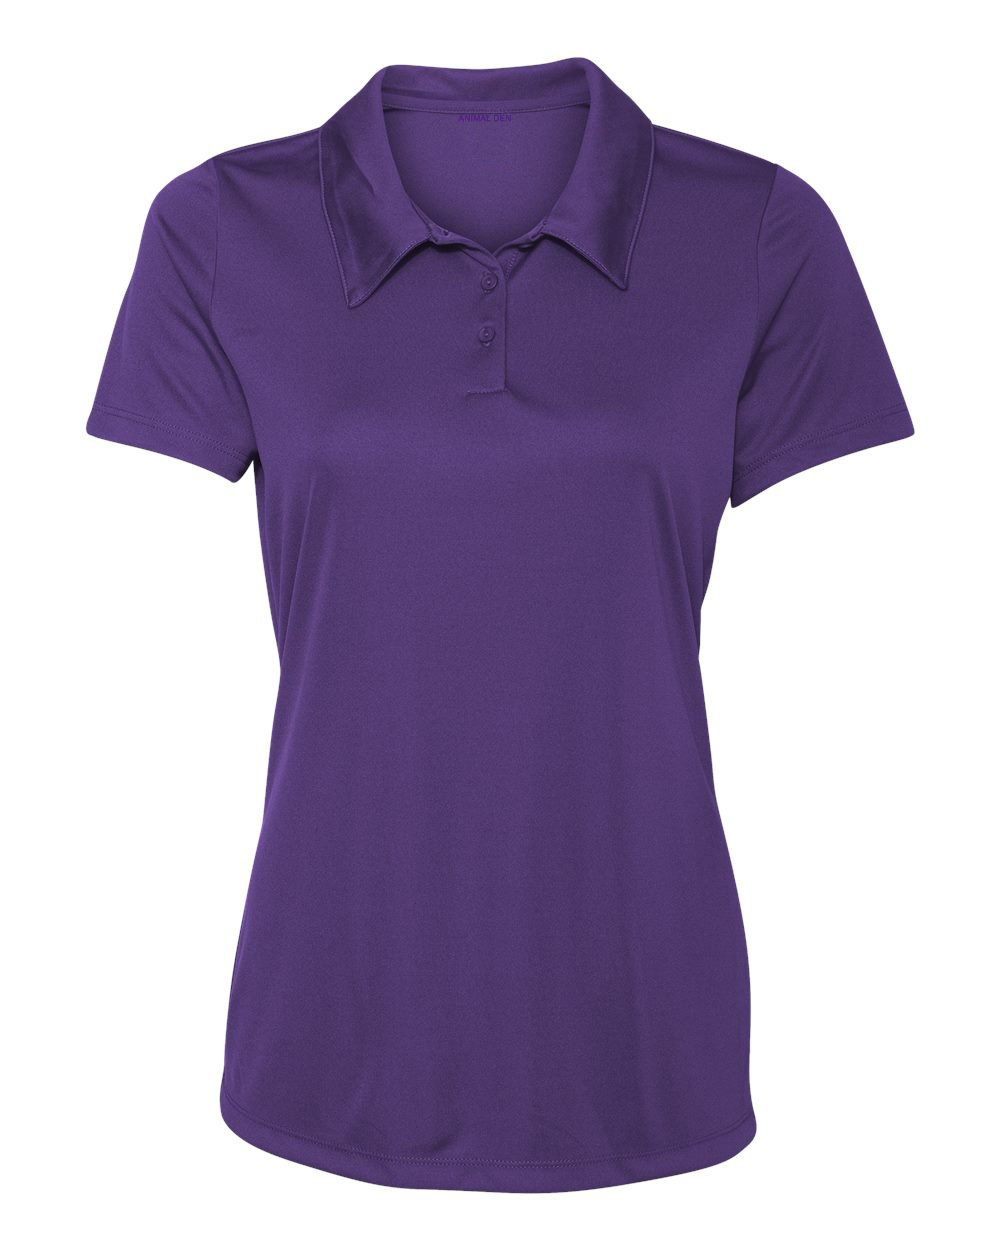 Women's Dry-Fit Golf Polo Shirts 3-Button Golf Polo's in 20 Colors XS-3XL Shirt PURPLE-3XL by Animal Den